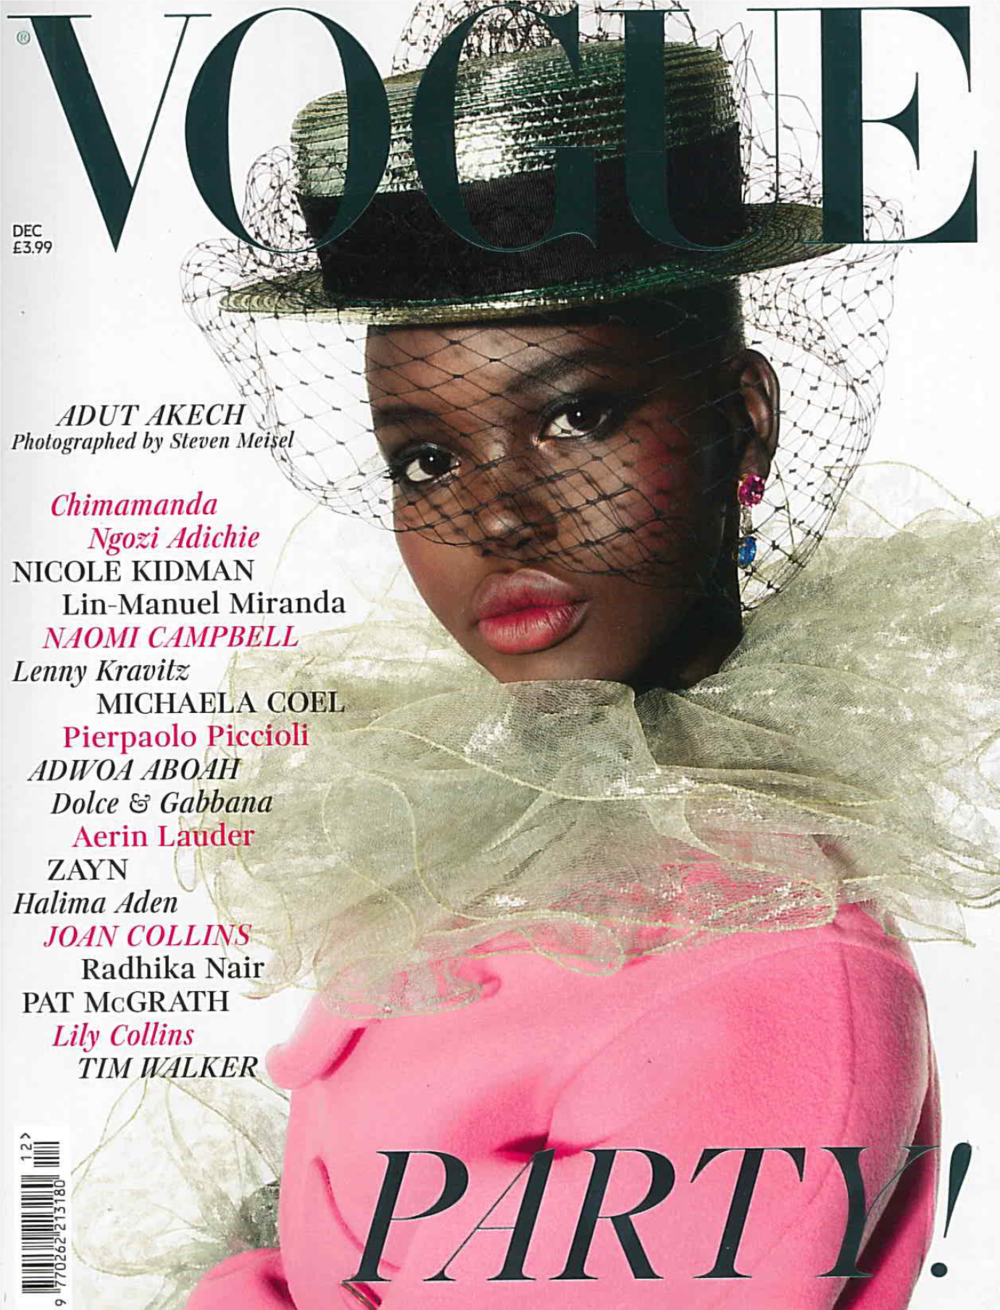 Britist Vogue Dec. 2018 Adut Akech Cover